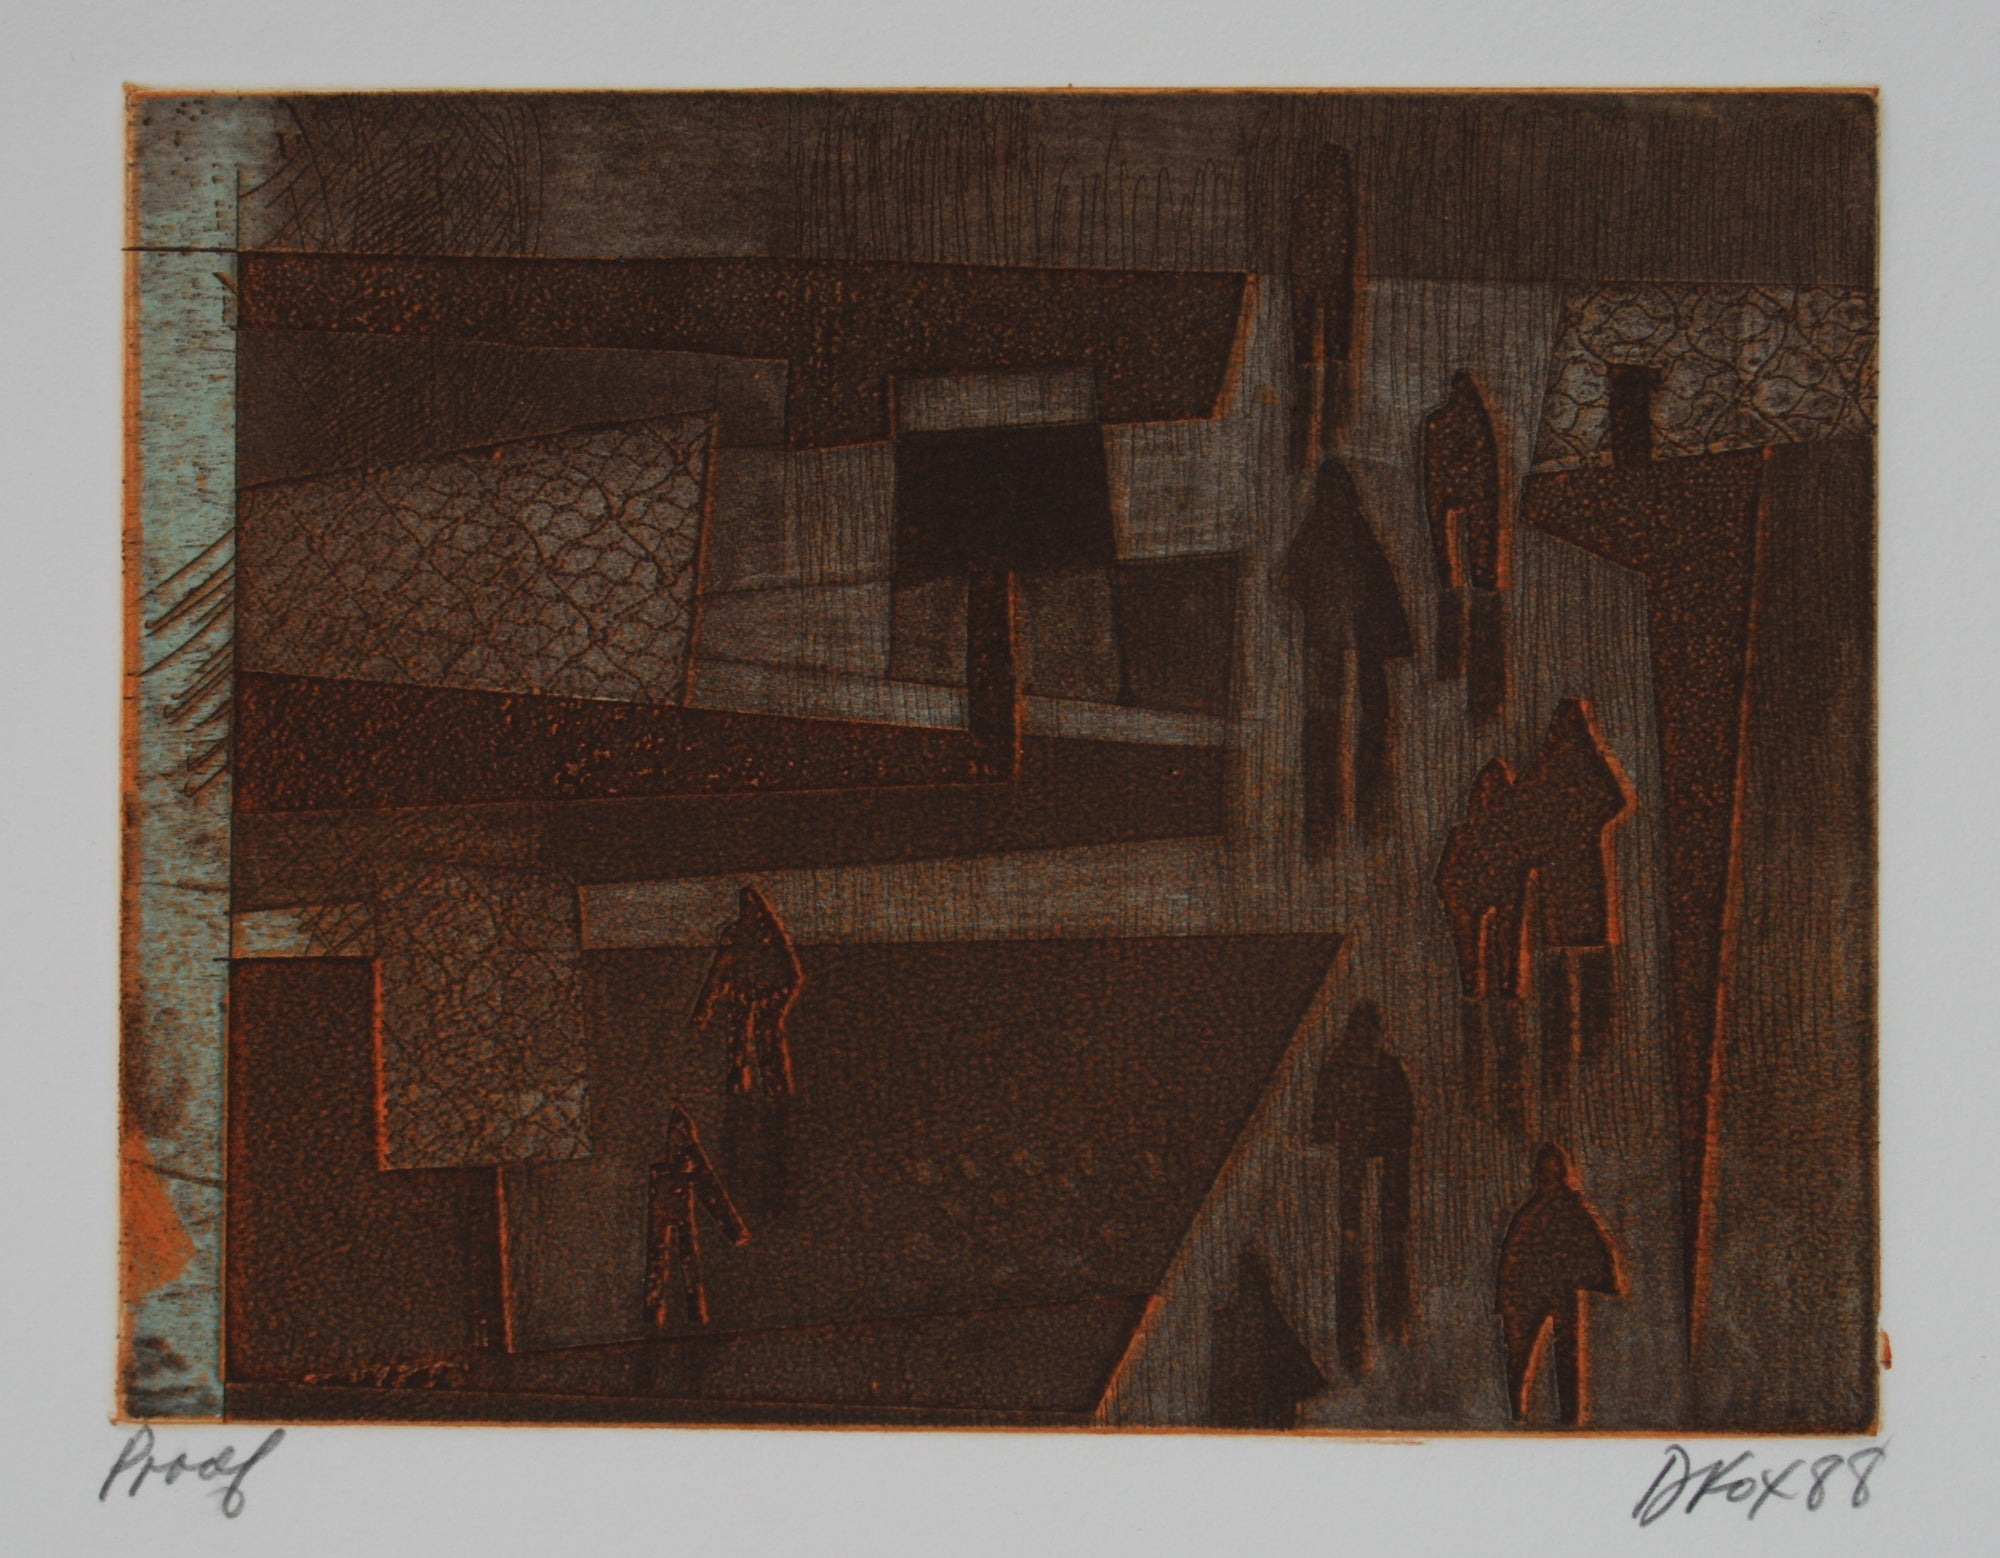 1988 Abstracted People Scene<br>Etching on Paper<br><br>#71238